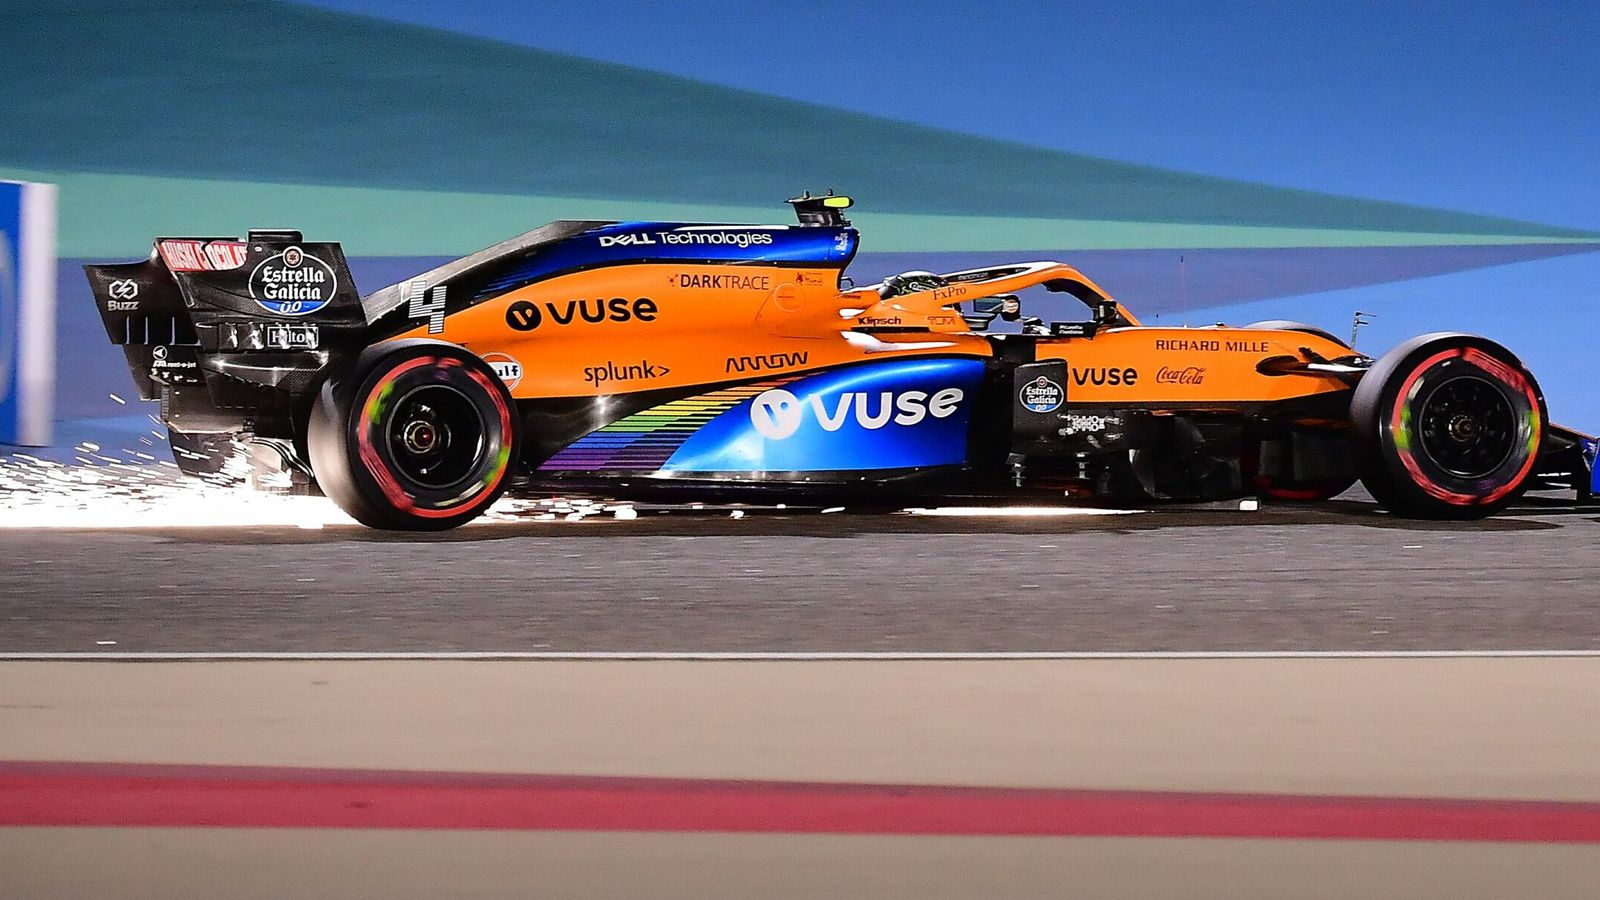 Bahrain GP live TV schedule: When and how to watch on Sky Sports F1